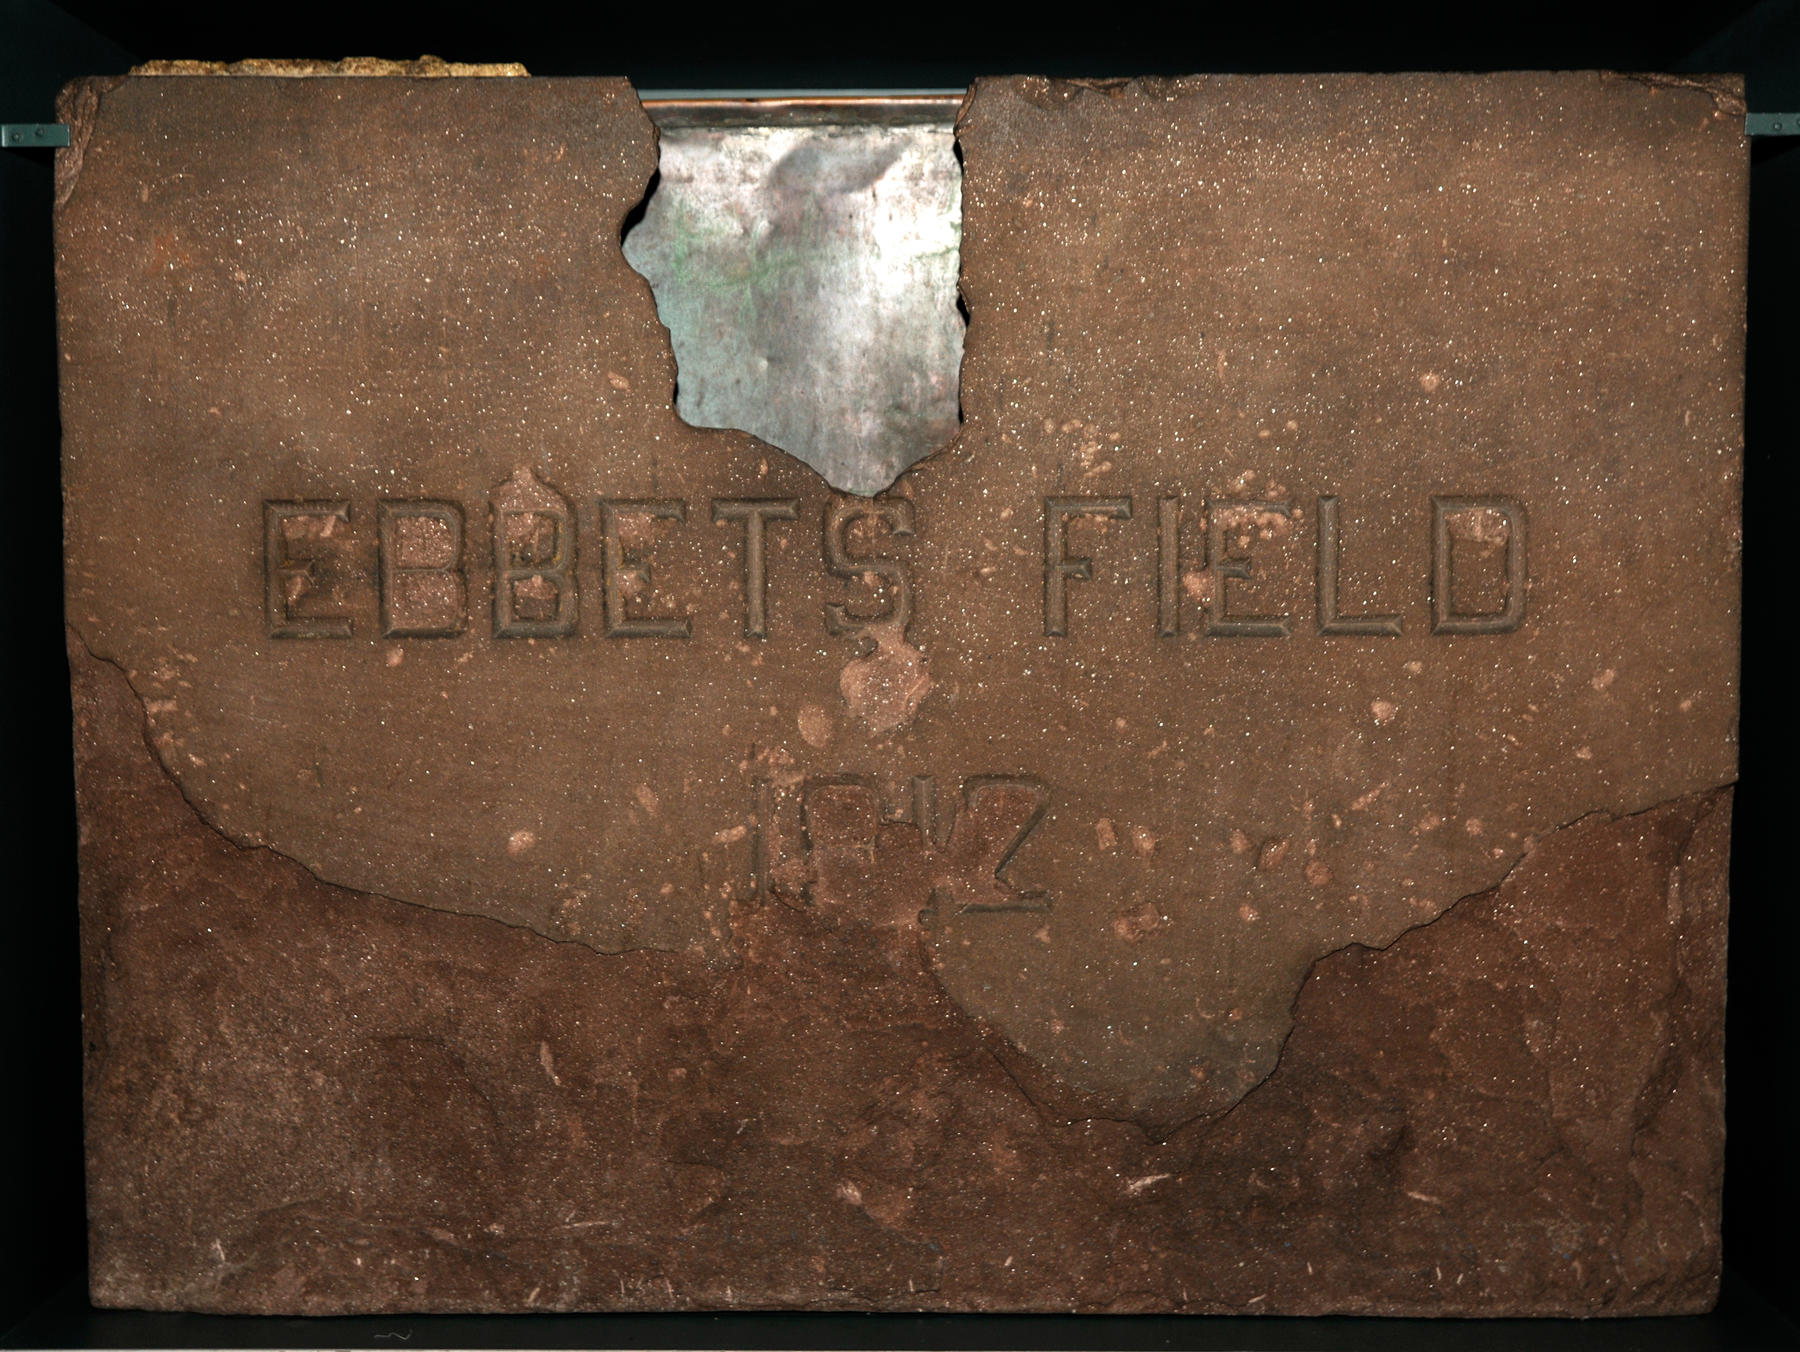 Ebbets Field's cornerstone is on exhibit at the Hall of Fame – B-35-60 (Milo Stewart, Jr. / National Baseball Hall of Fame)